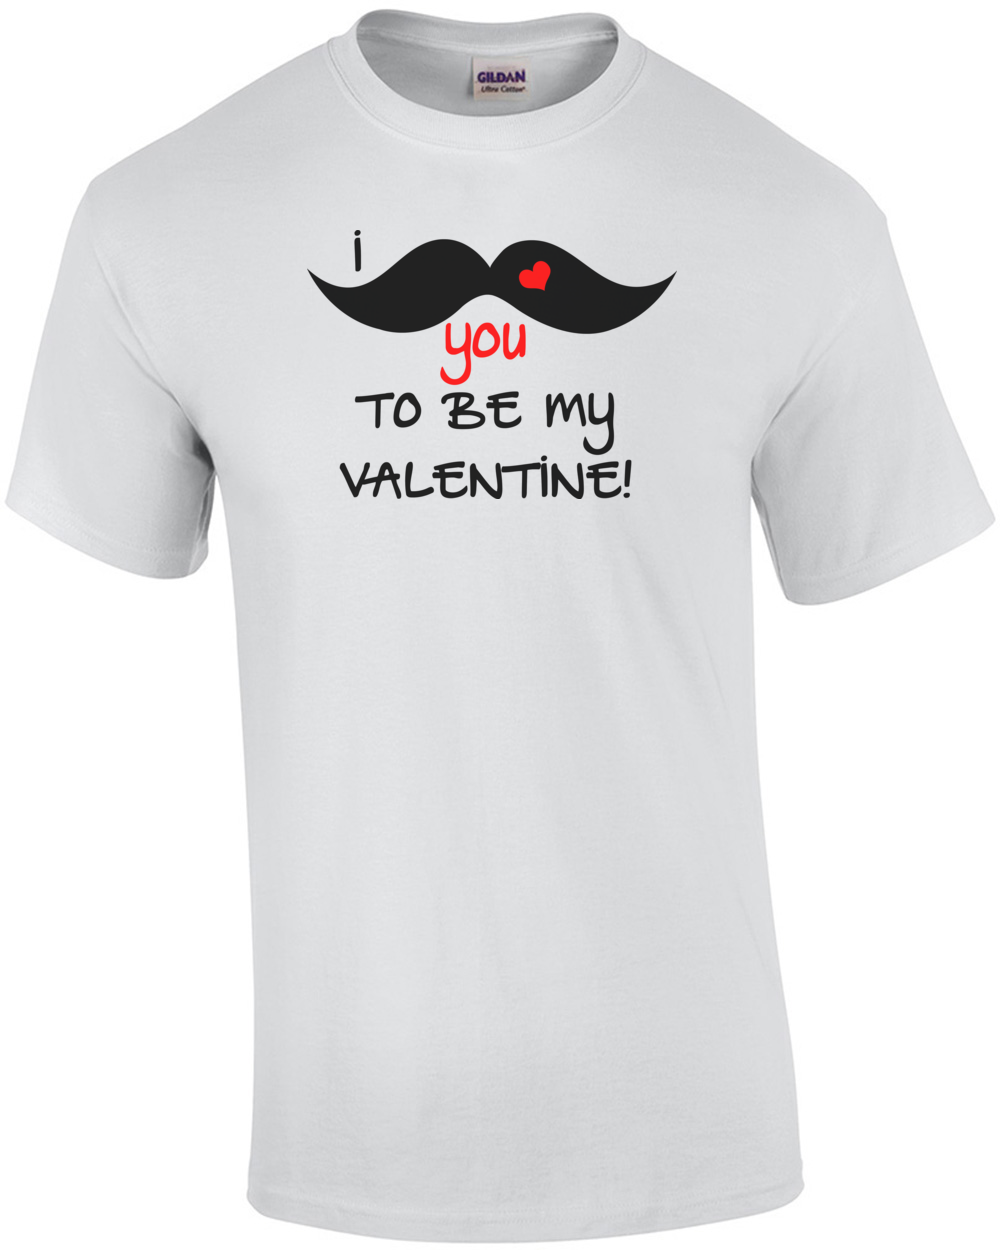 i mustache you to be my valentine funny valentines day shirt - Valentine Day Shirts